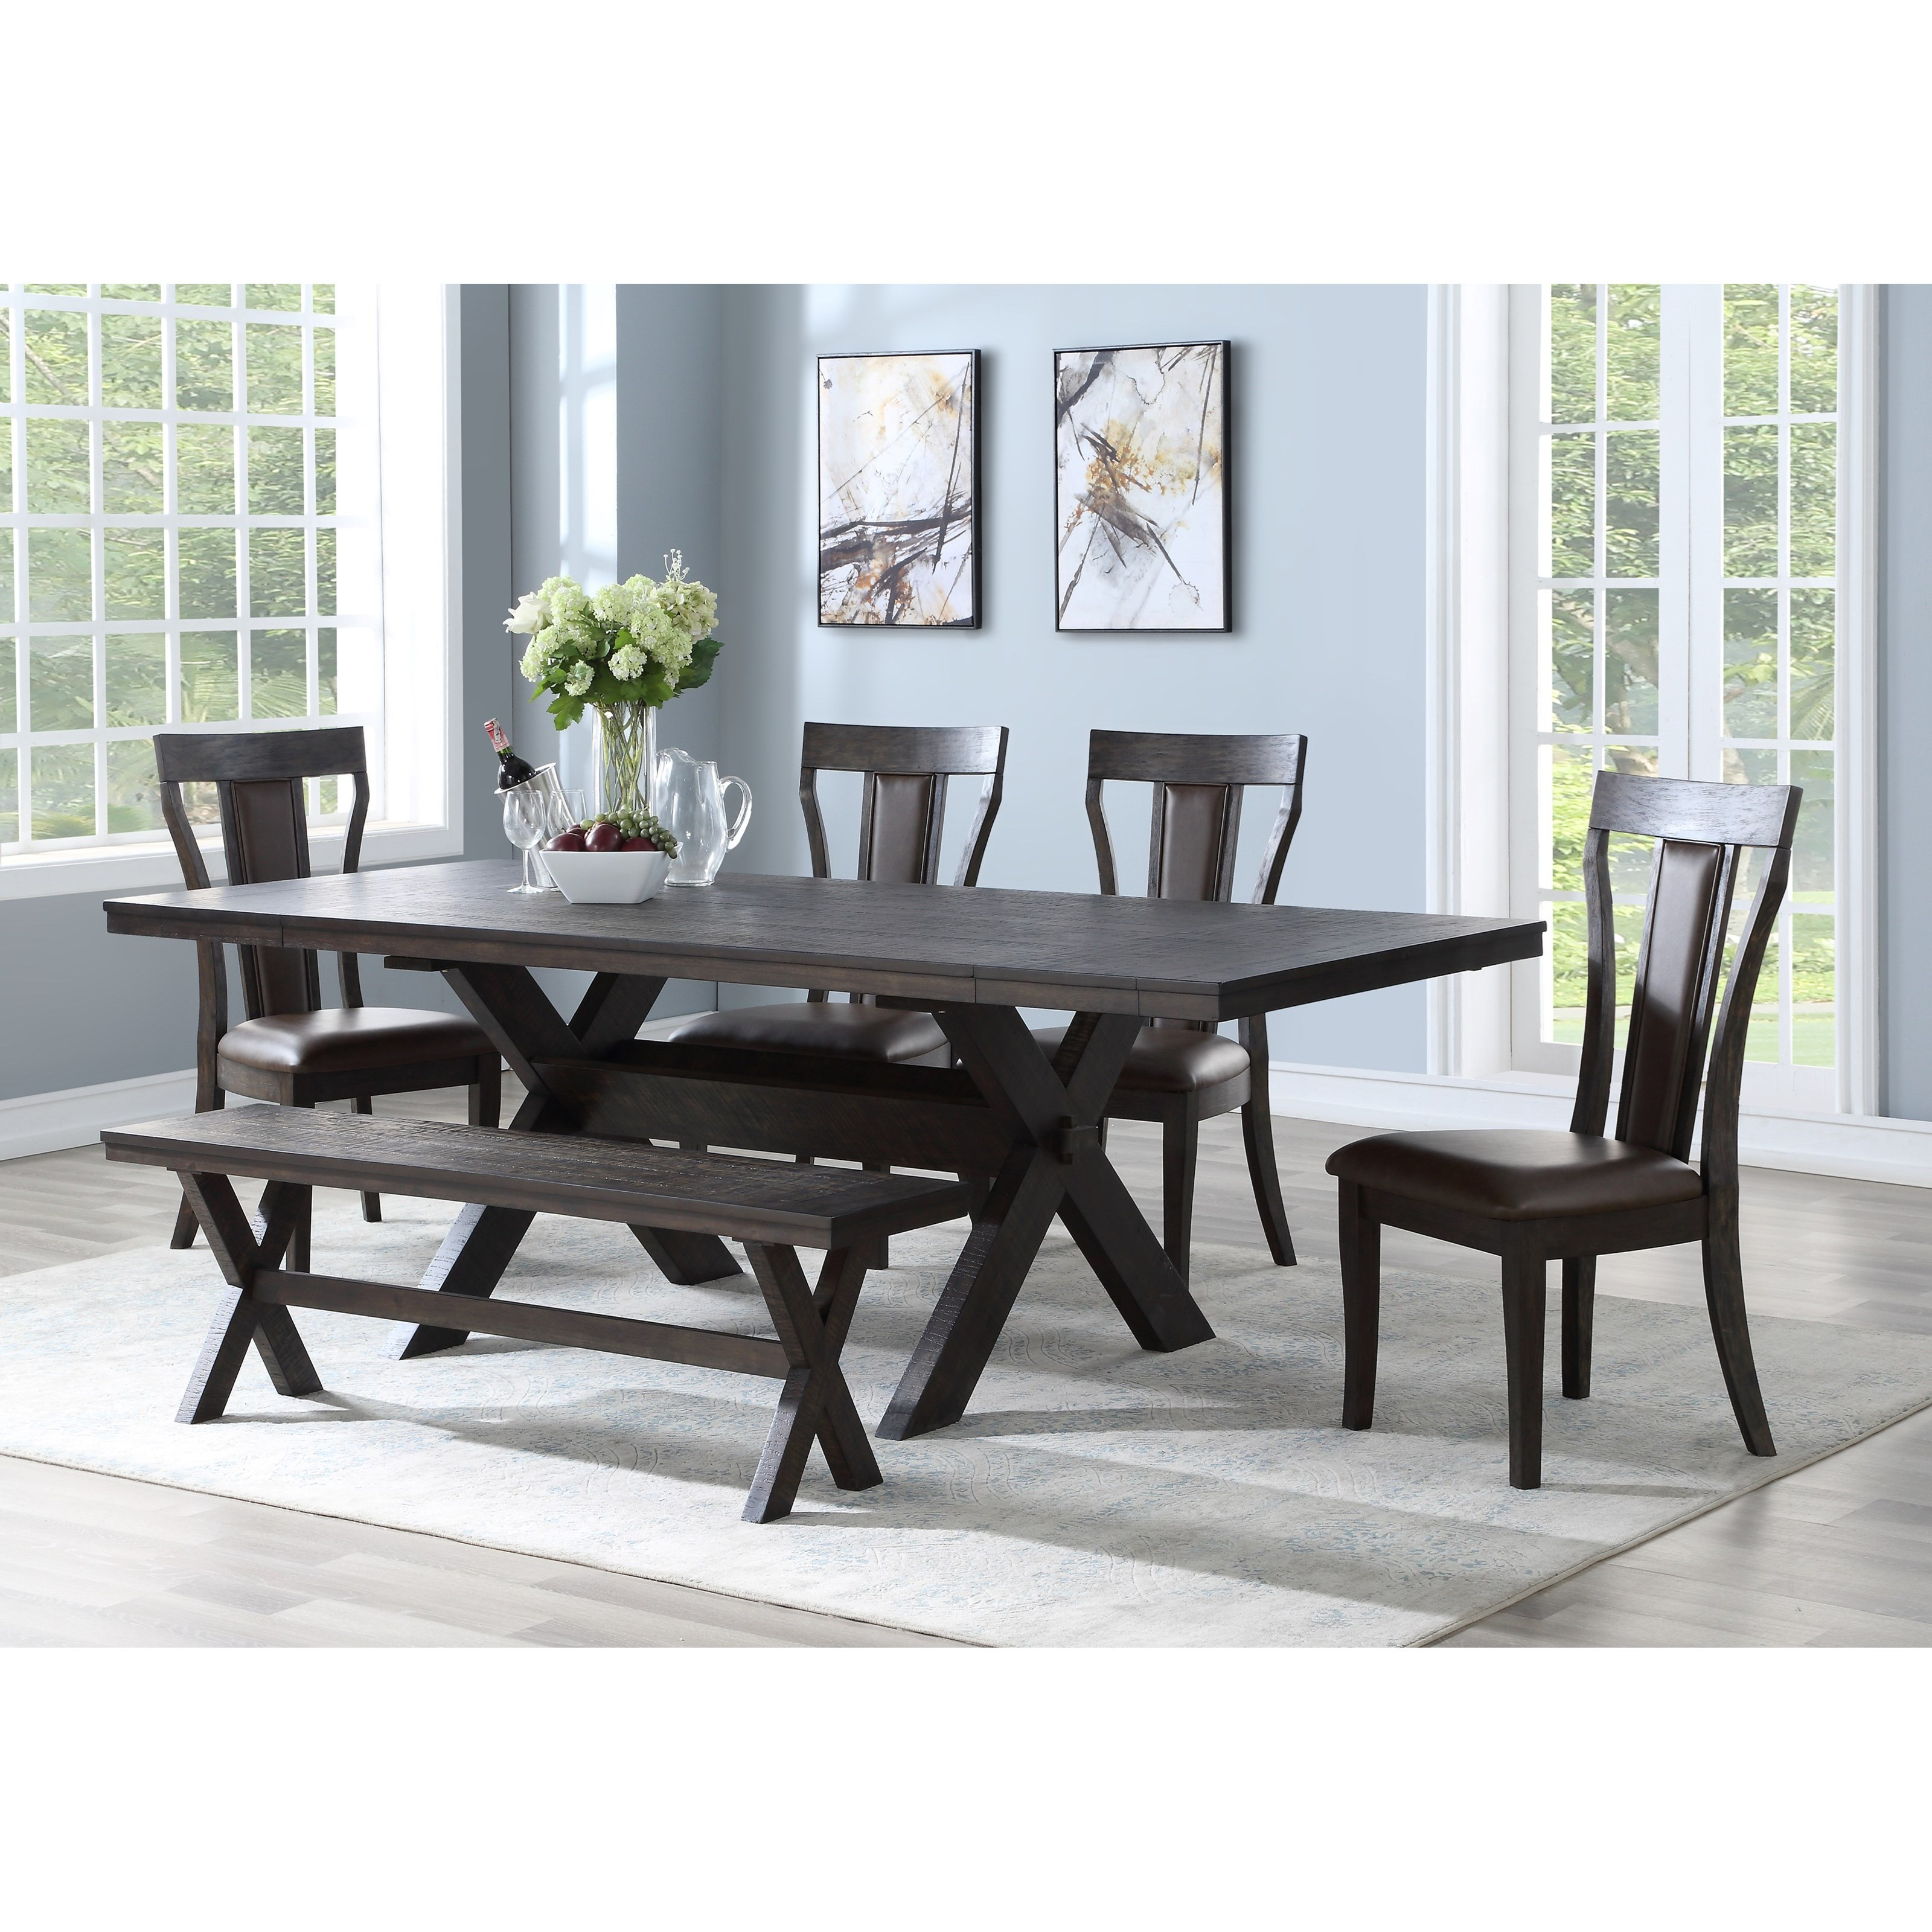 New Classic Aubree D682 10t 10b 25 4x20 Contemporary Table And Chair Set With Bench And 2 Extension Leaves Corner Furniture Table Chair Set With Bench